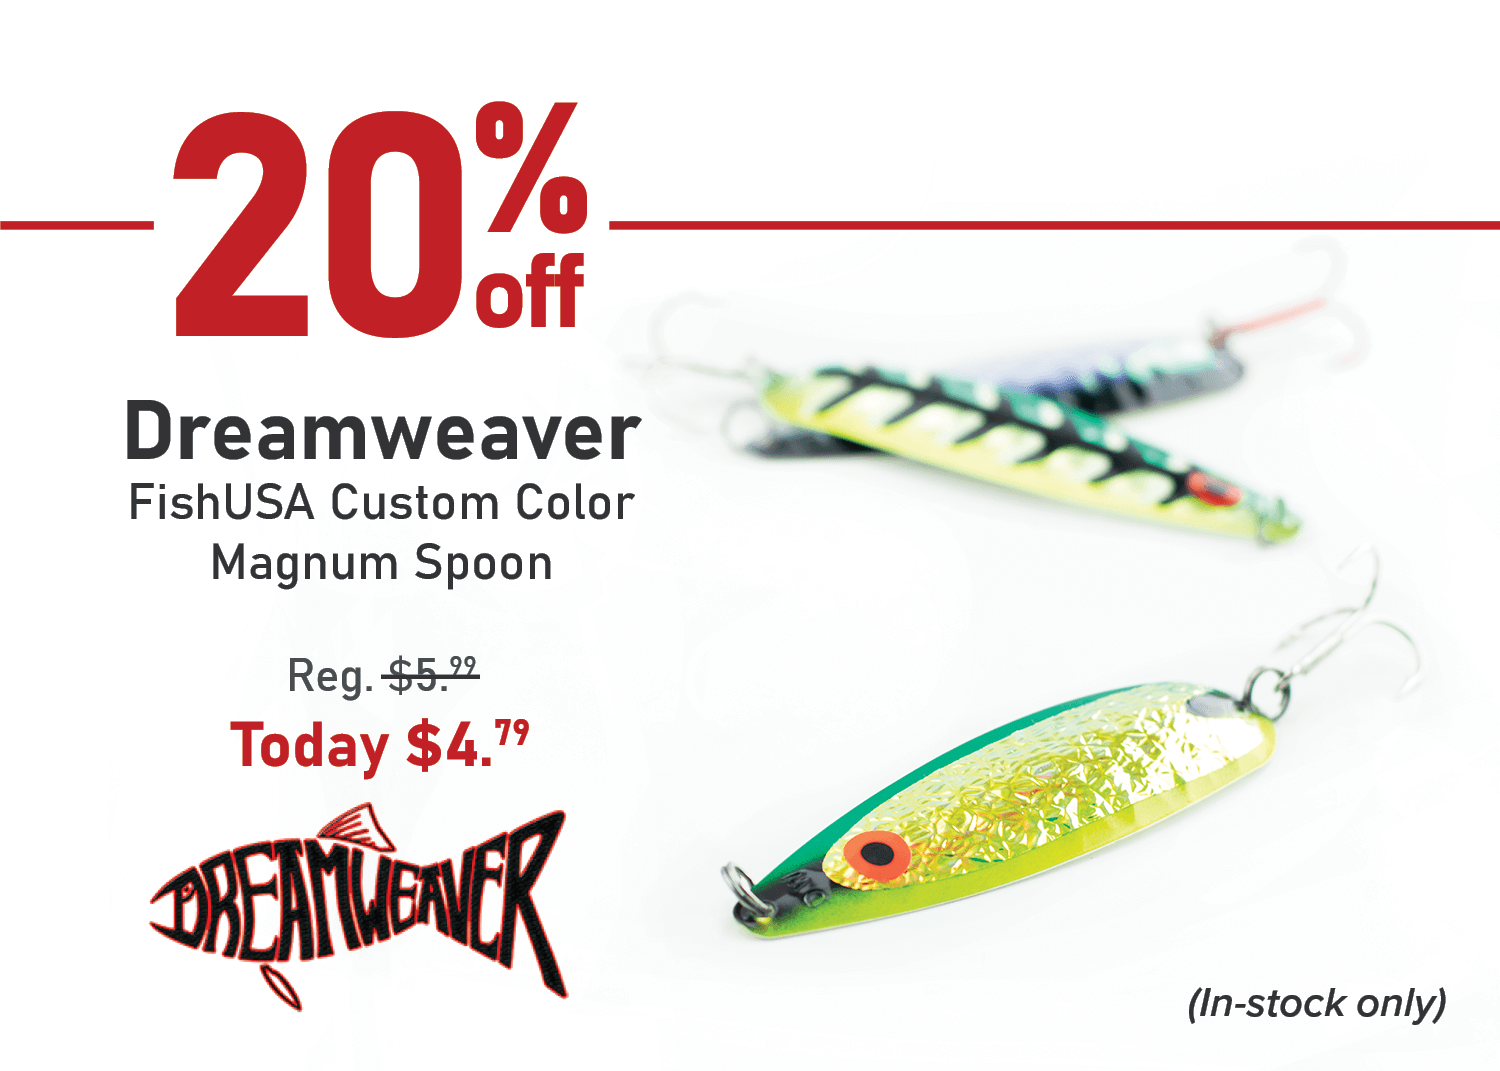 Save 20% on the Dreamweaver FishUSA Custom Color Magnum Spoon